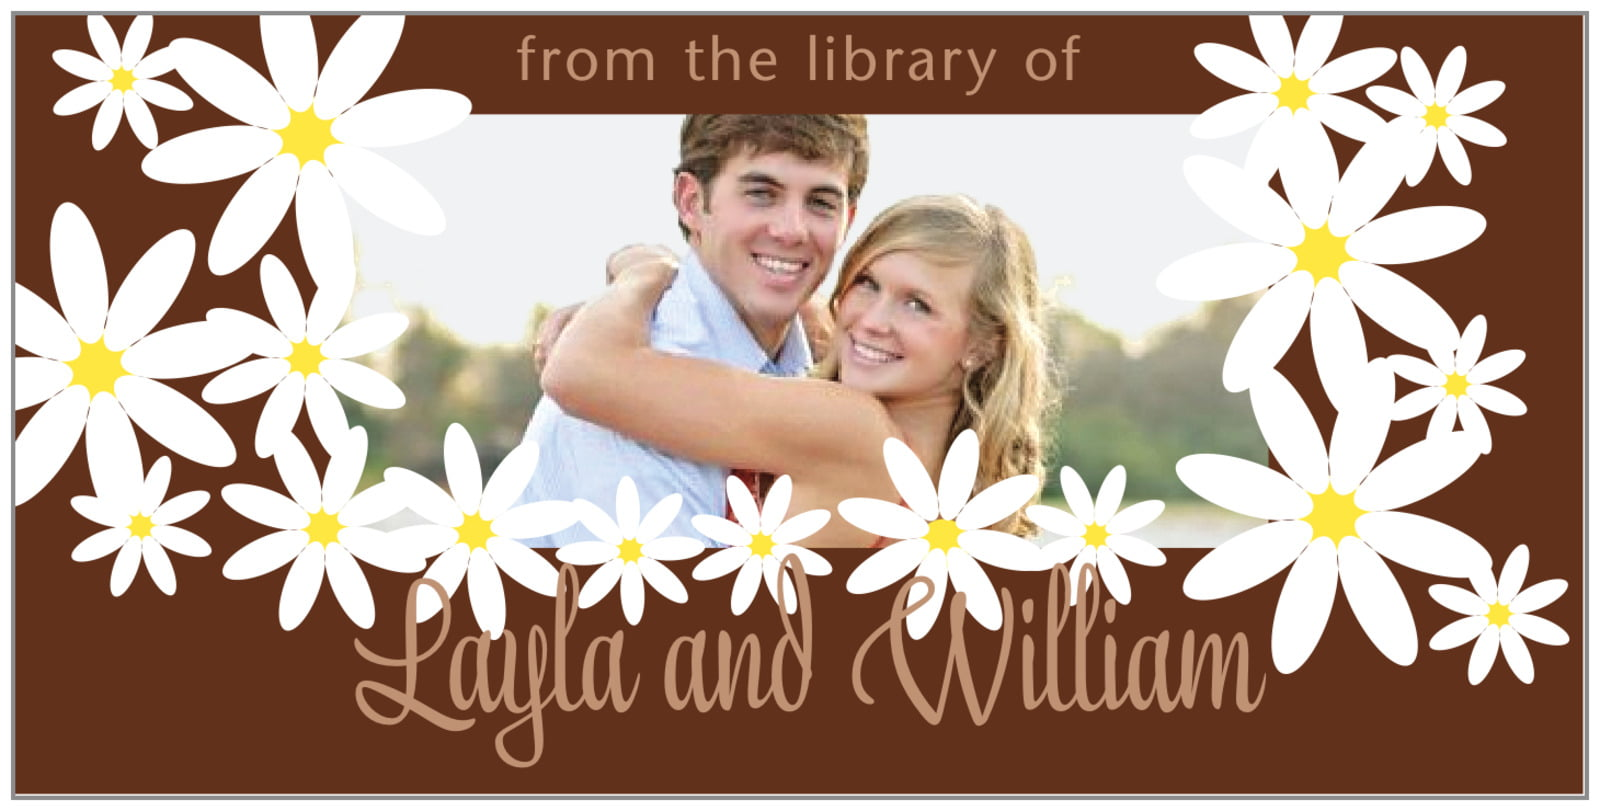 bookplates for everyone - chocolate - dreaming daisies (set of 24)